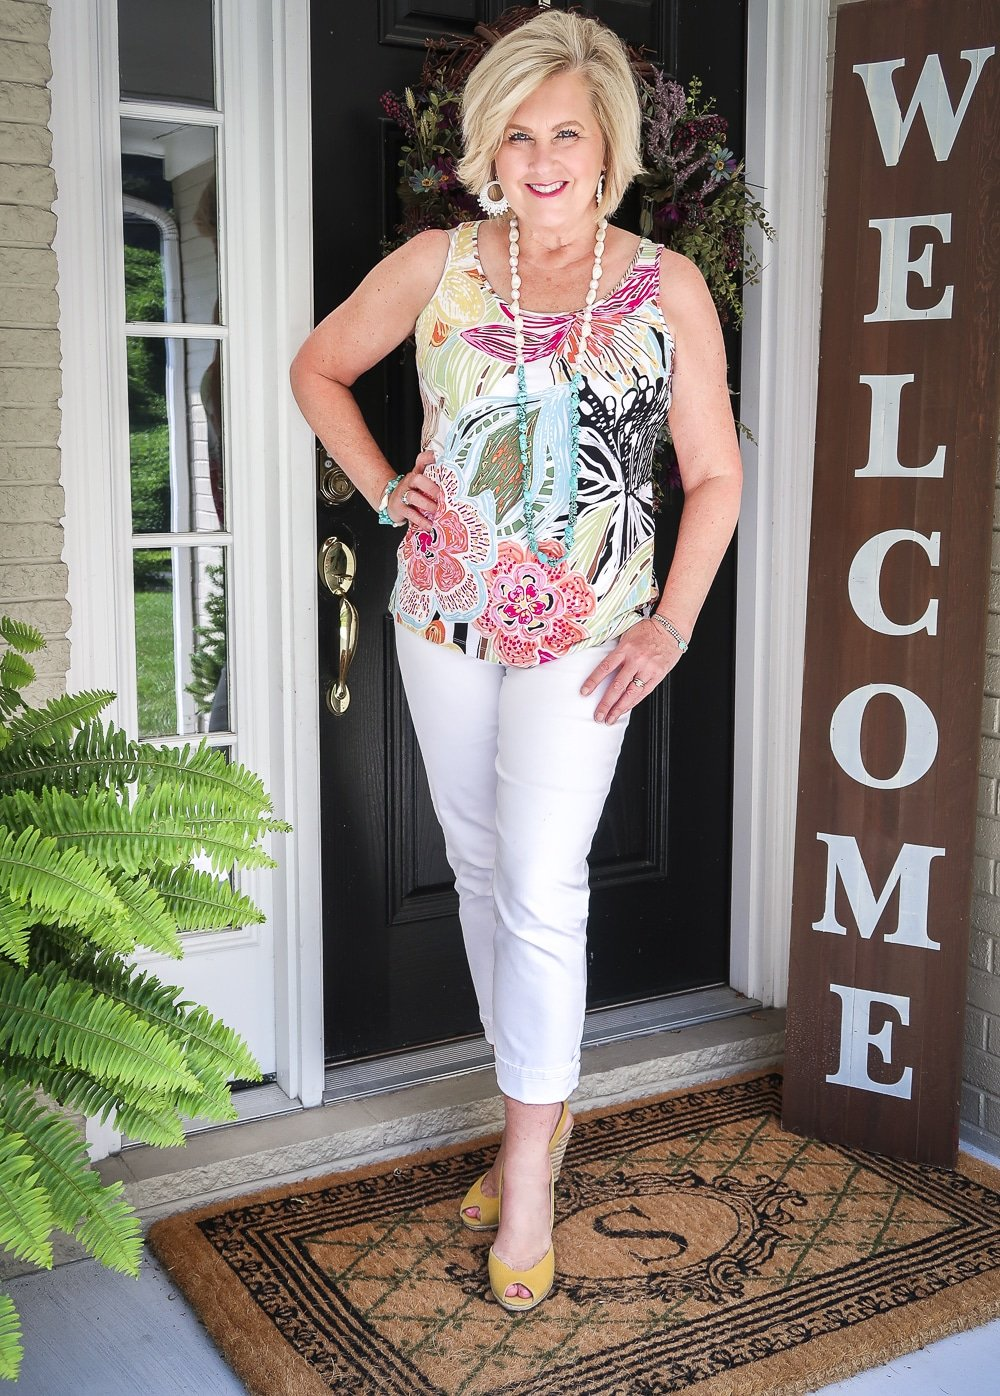 Fashion Blogger 50 Is Not Old is looking summery in a bright tropical top, white ankle jeans, and yellow espadrilles